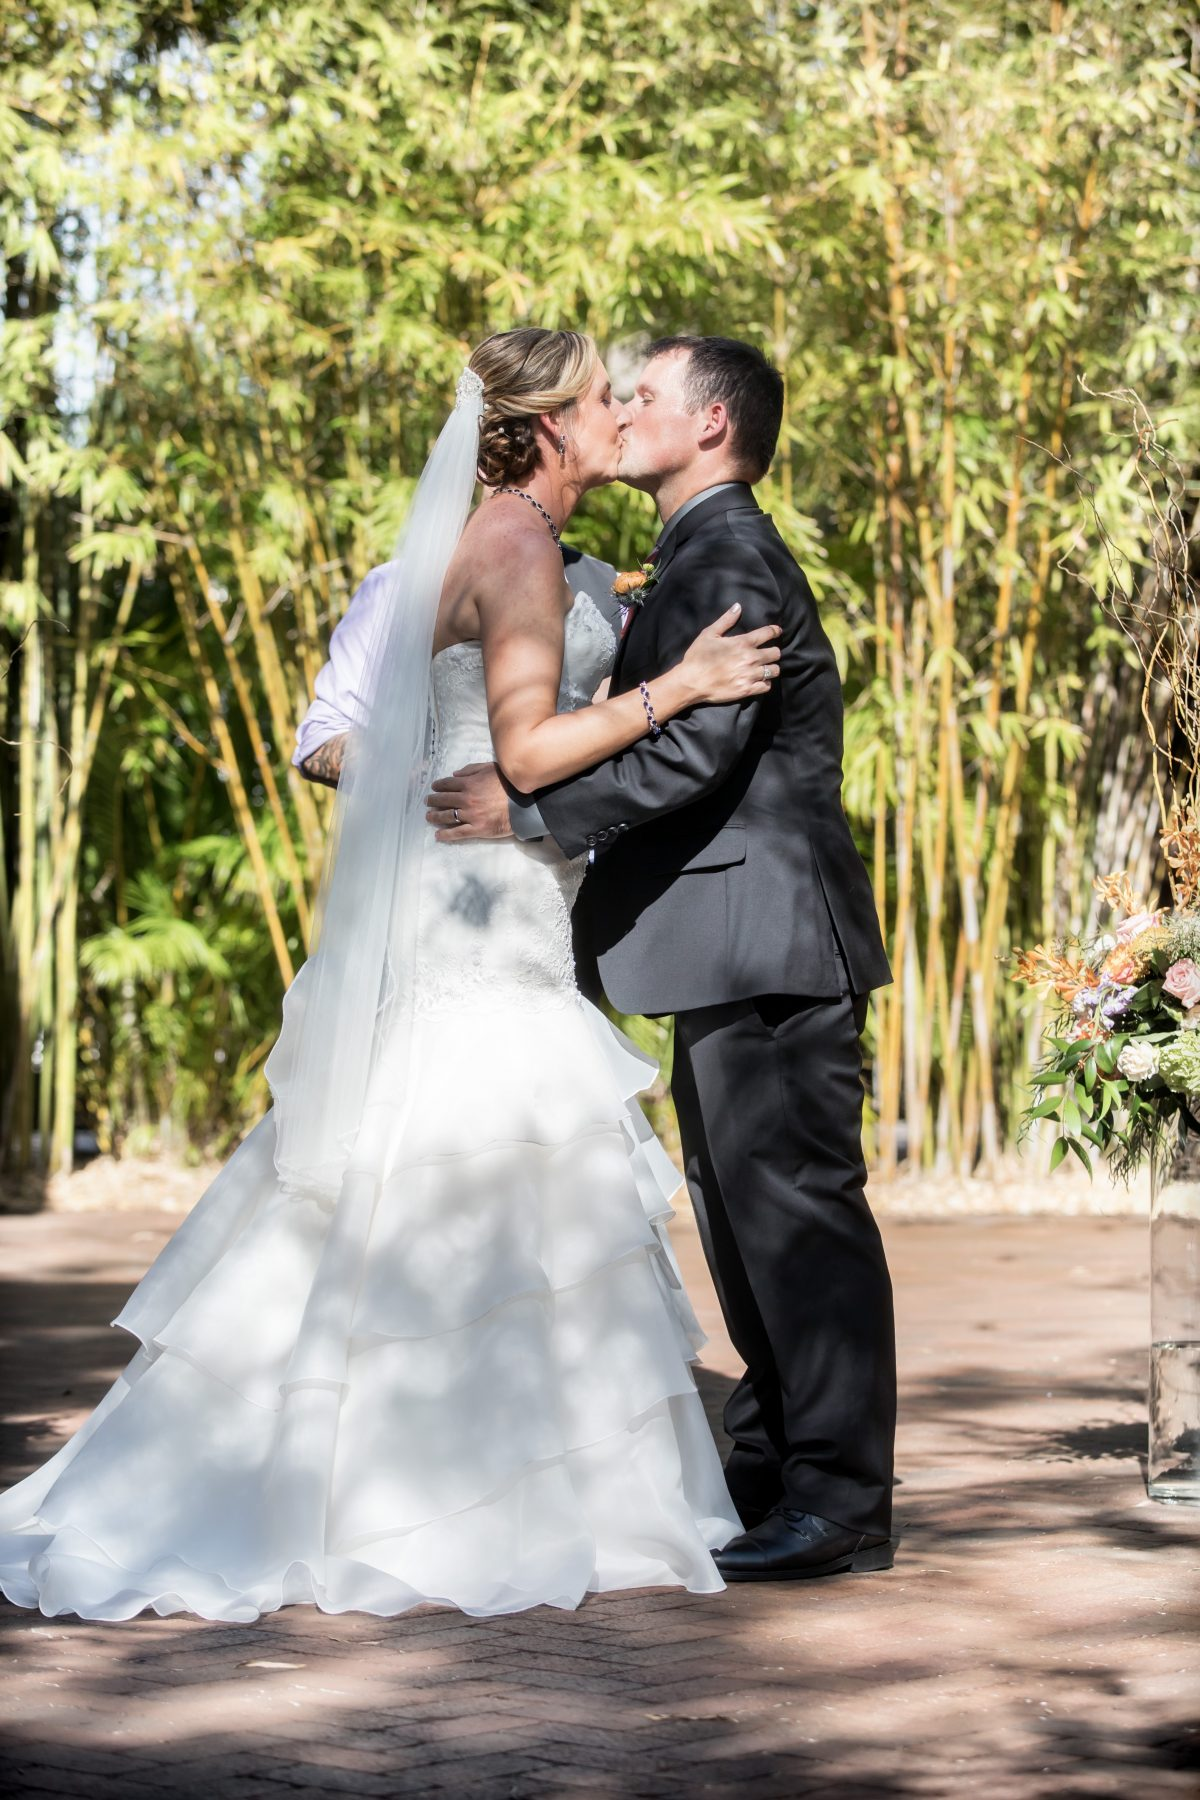 Wedding ceremony in bamboo garden in downtown St. Pete at Historic Wedding Venue NOVA 535 in St. Pete